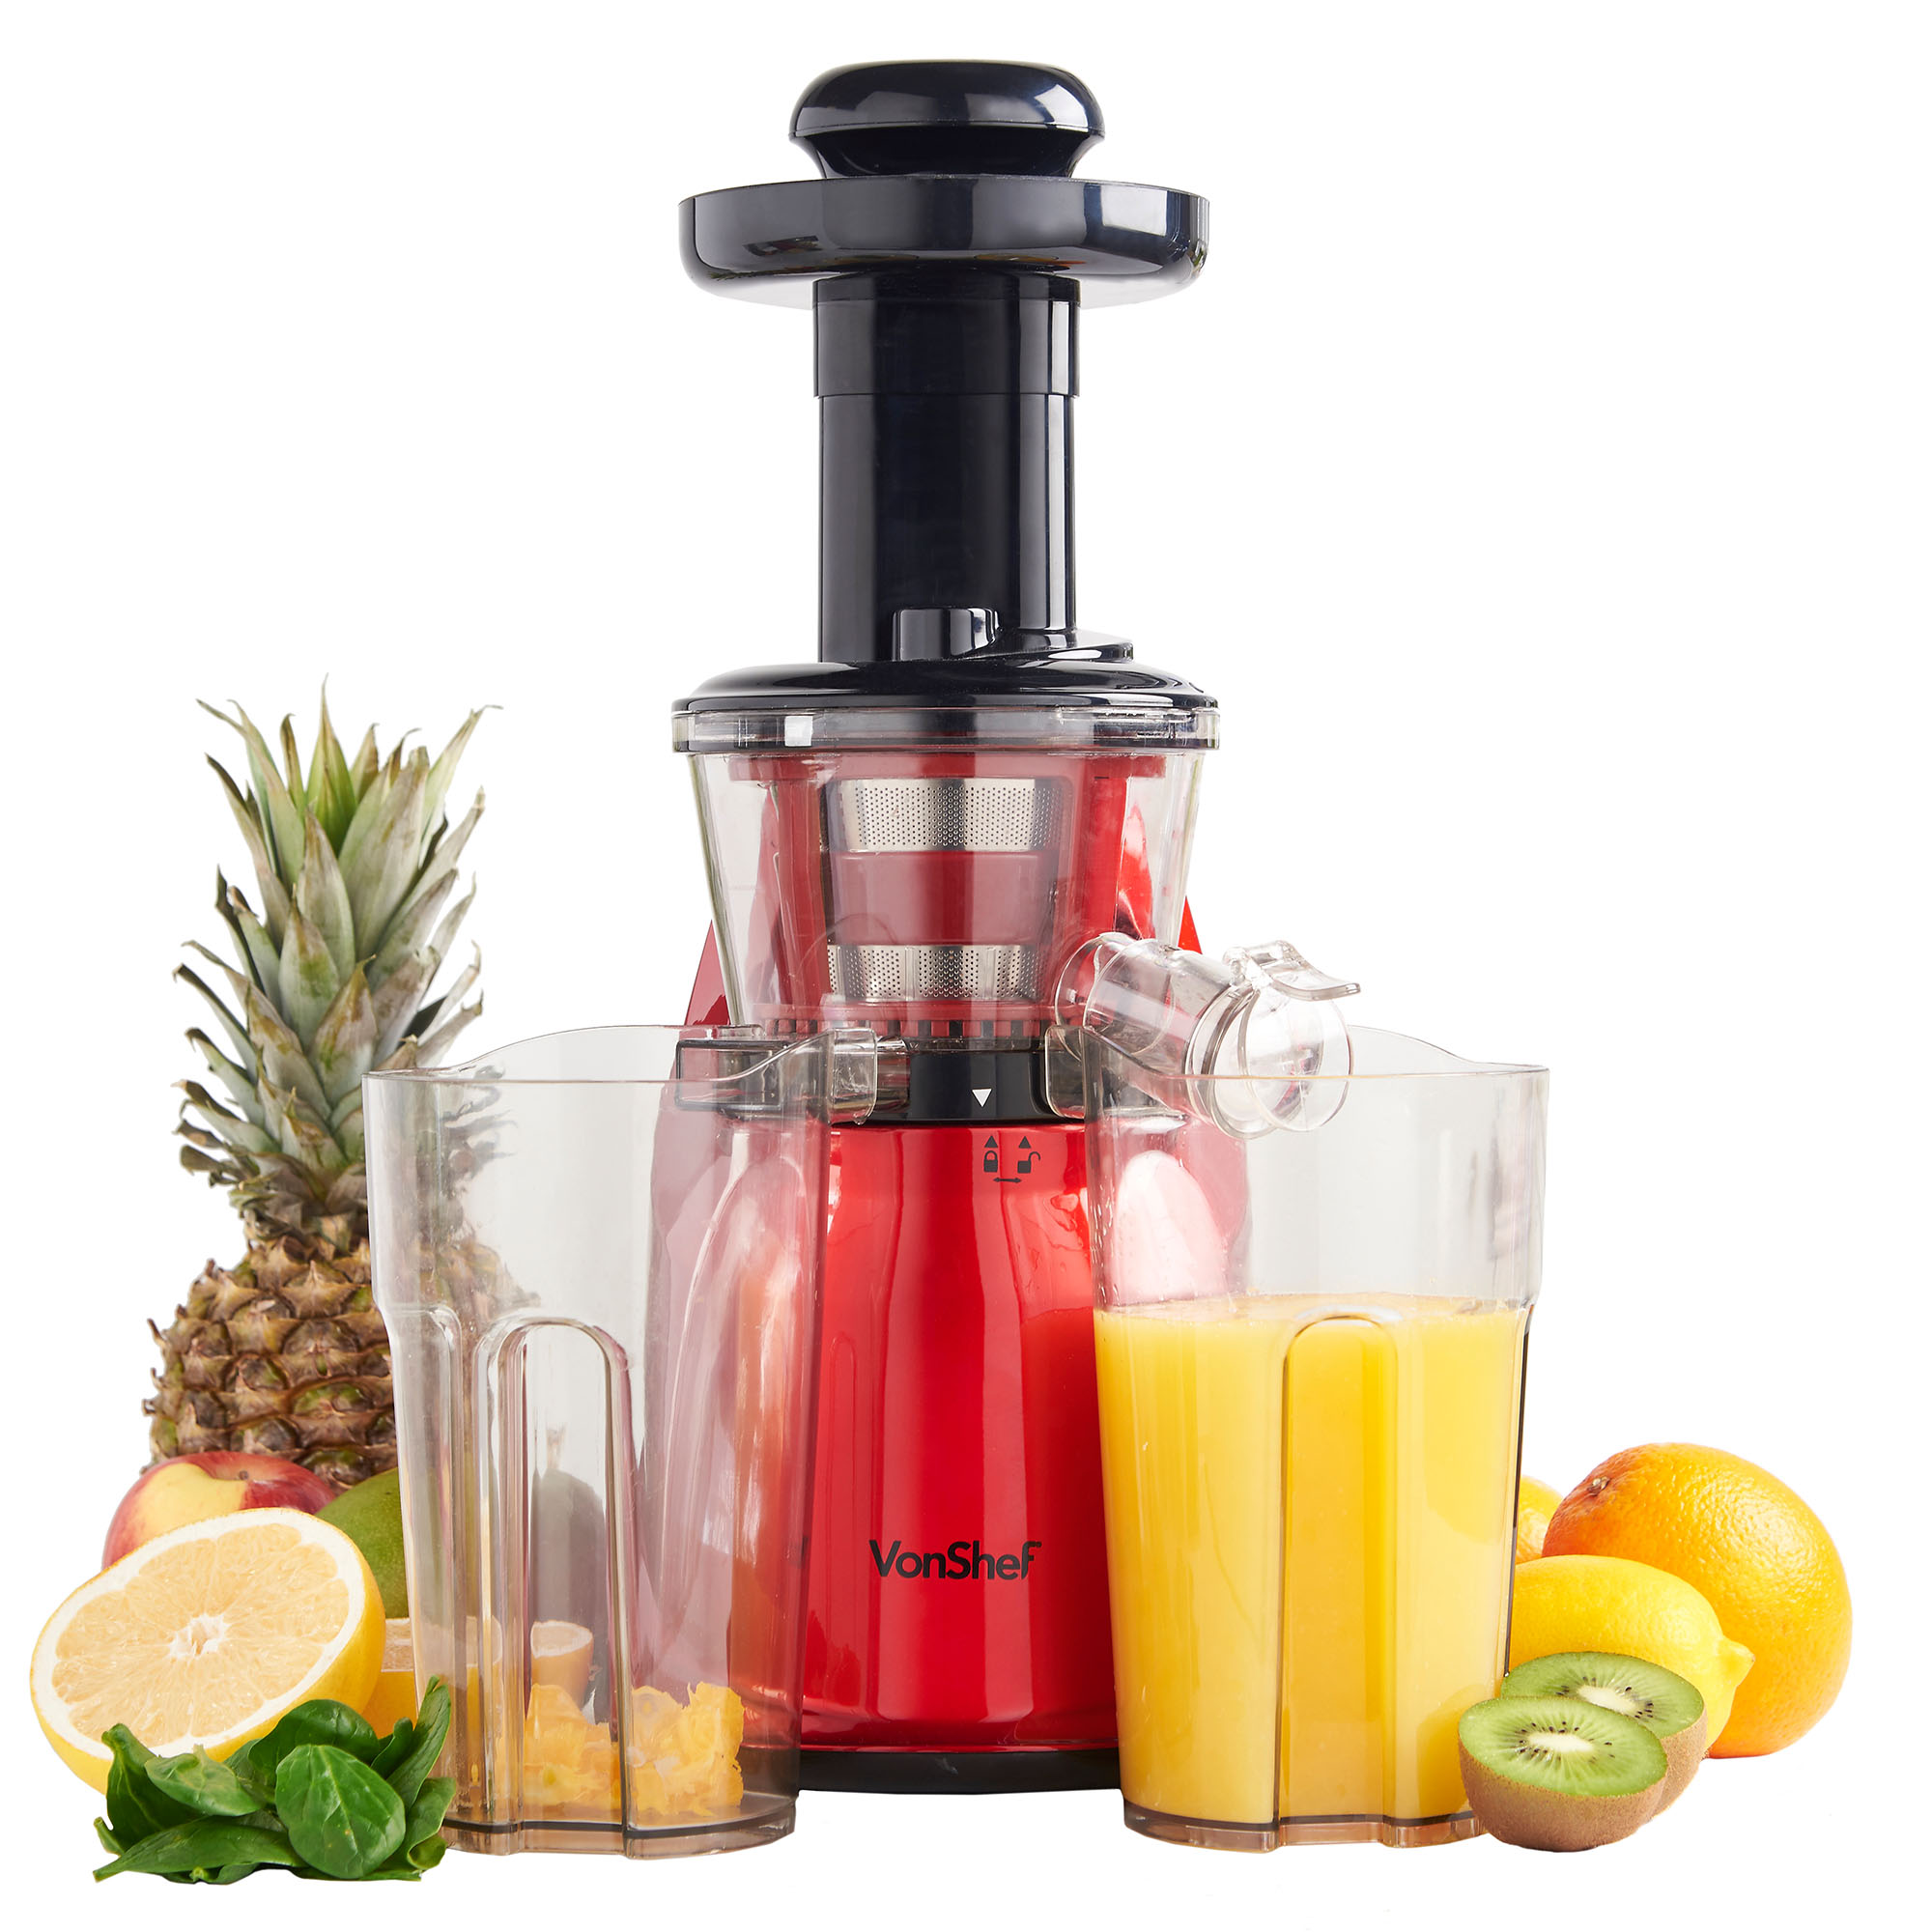 Domoclip Premium Slow Juicer : vonShef Premium Slow Masticating Juicer Electric vegetable Juice Extractor - Red eBay